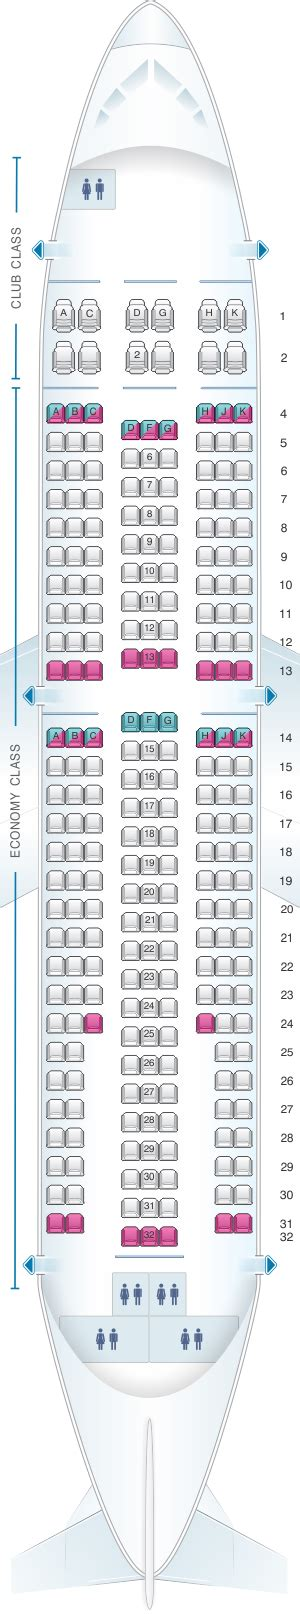 air transat selection de siege plan de cabine air transat airbus a310 300 seatmaestro fr